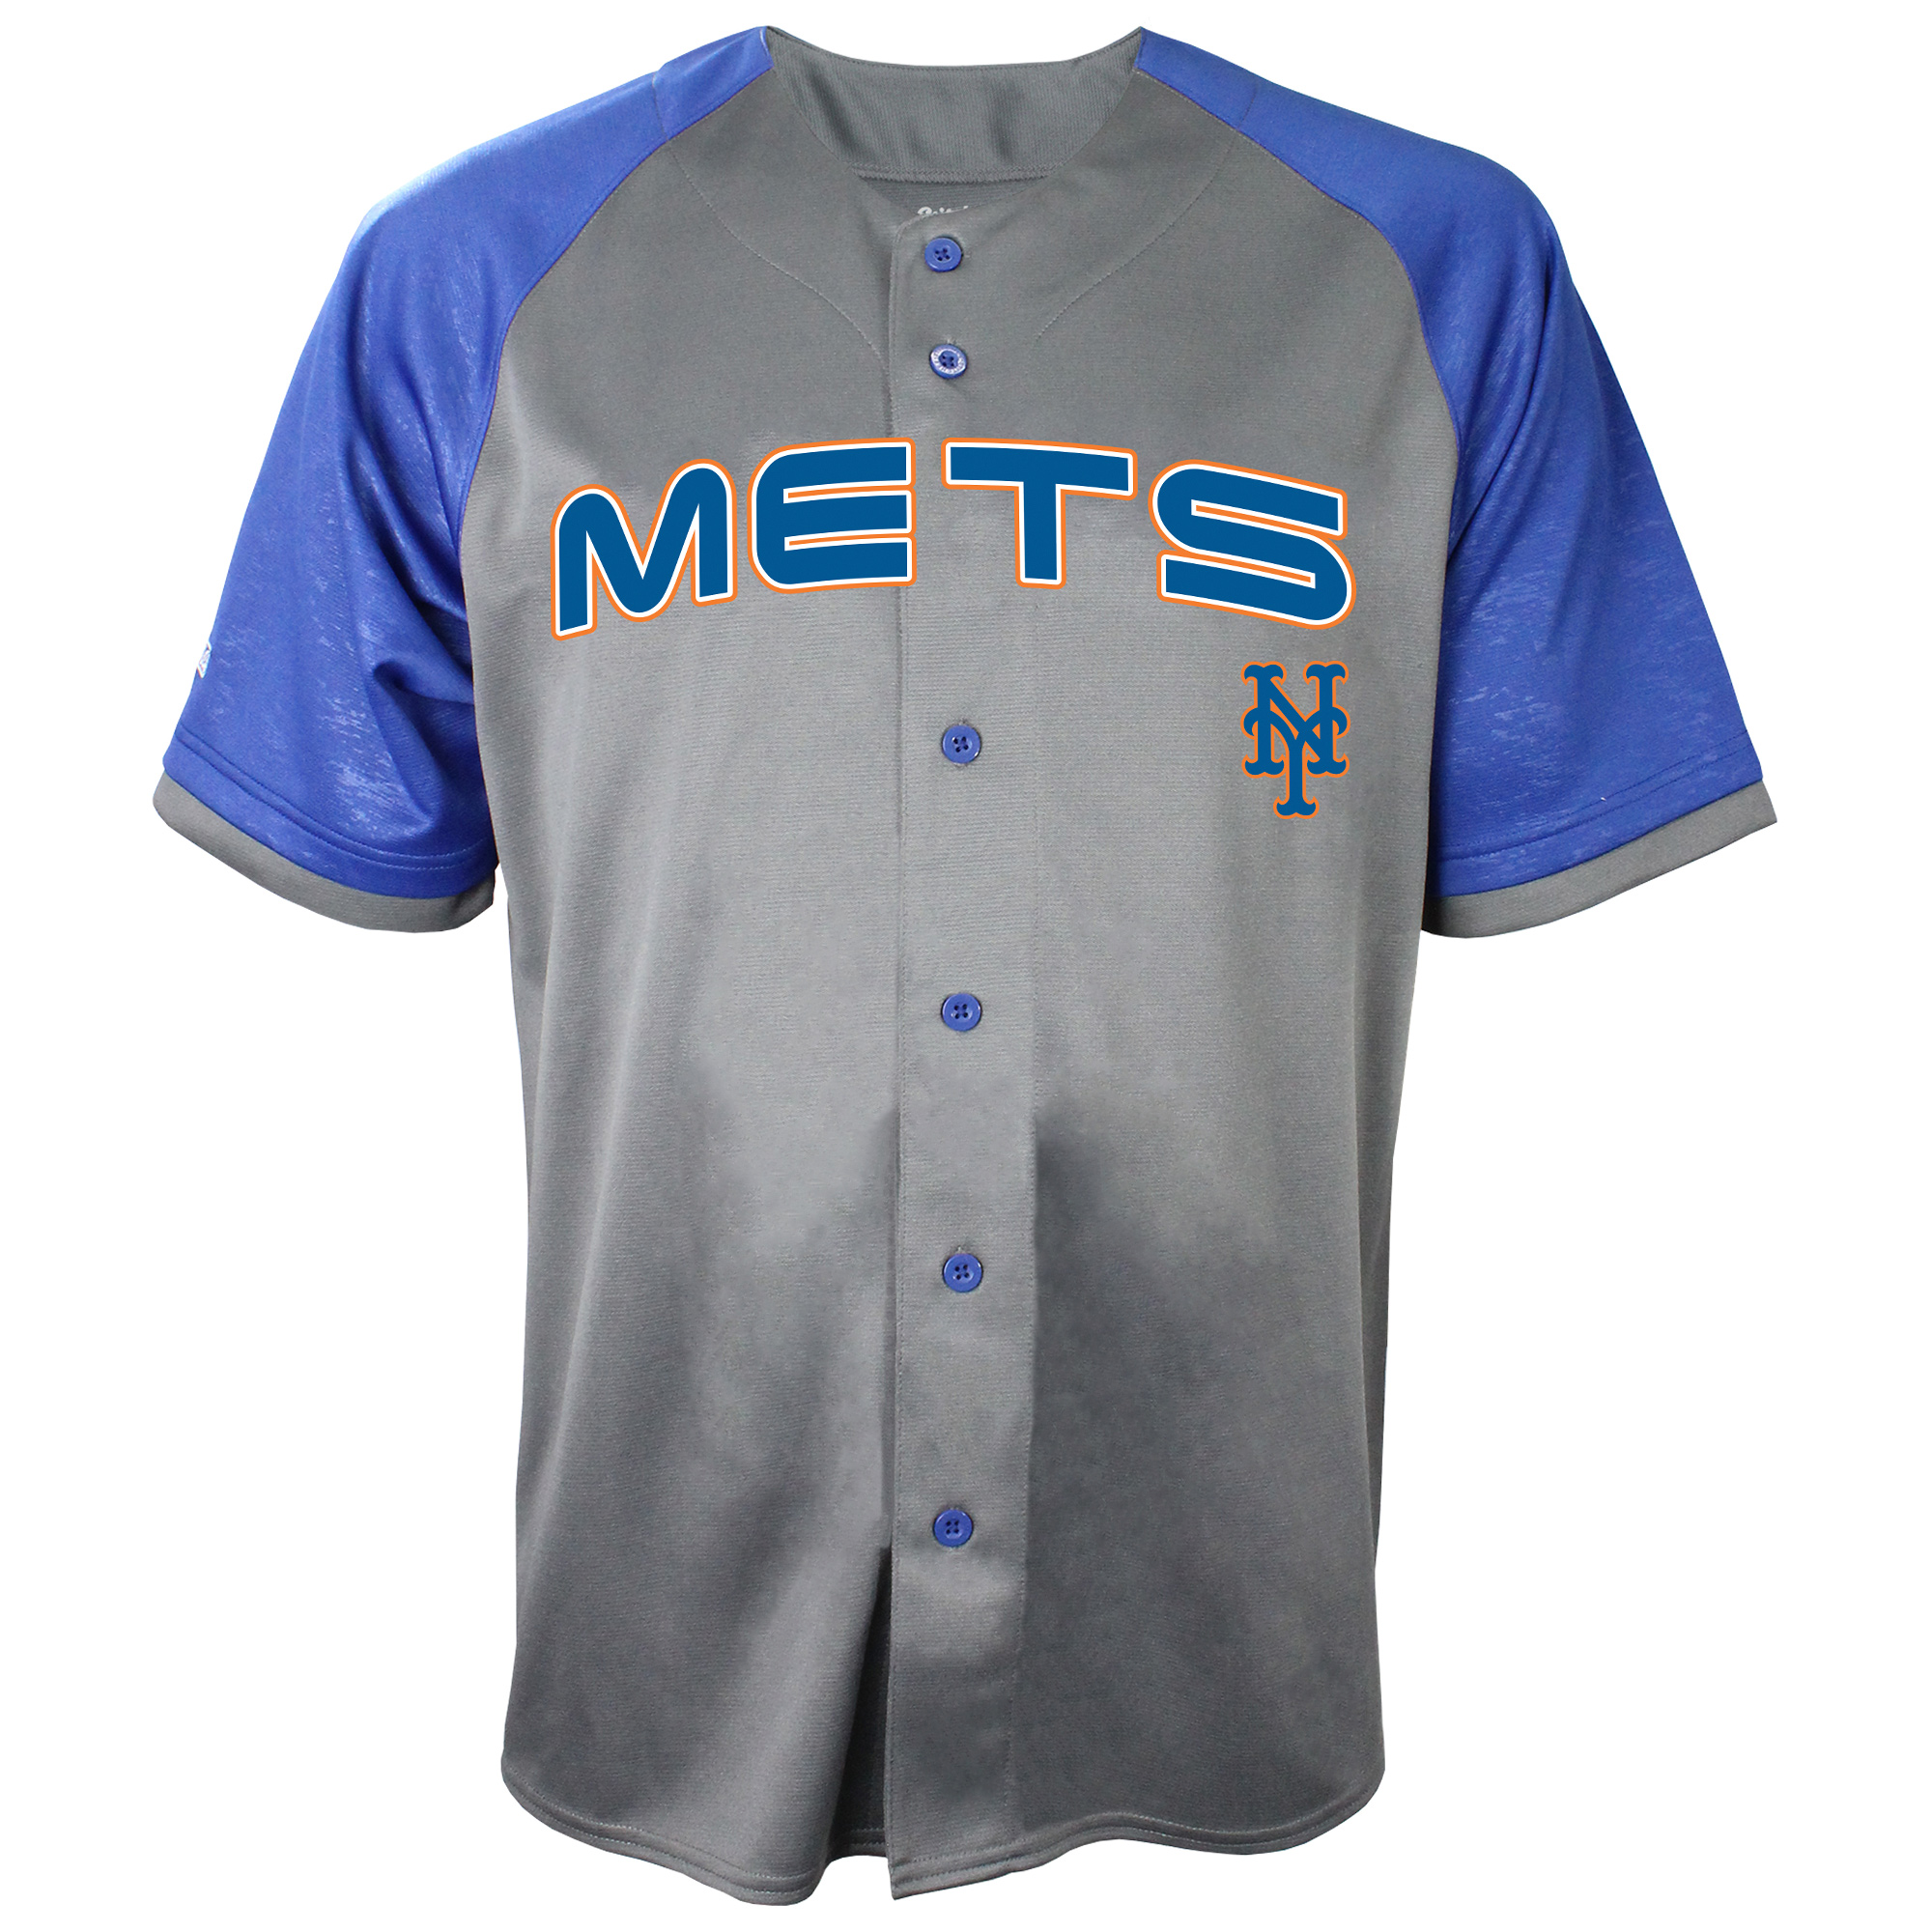 New York Mets Stitches Glitch Jersey - Charcoal/Royal